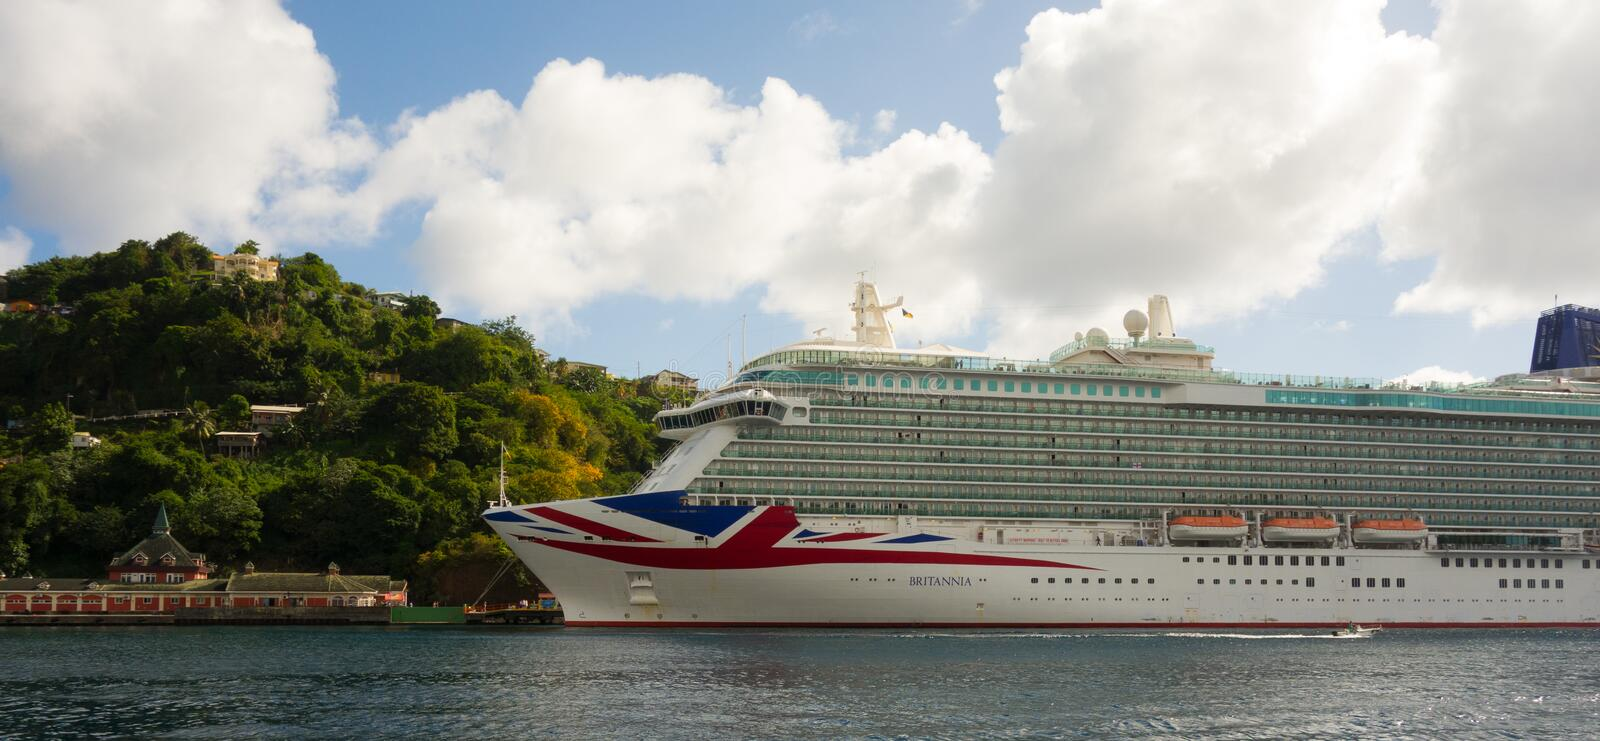 The cruise ship Britannia at a port in the windward islands royalty free stock photo